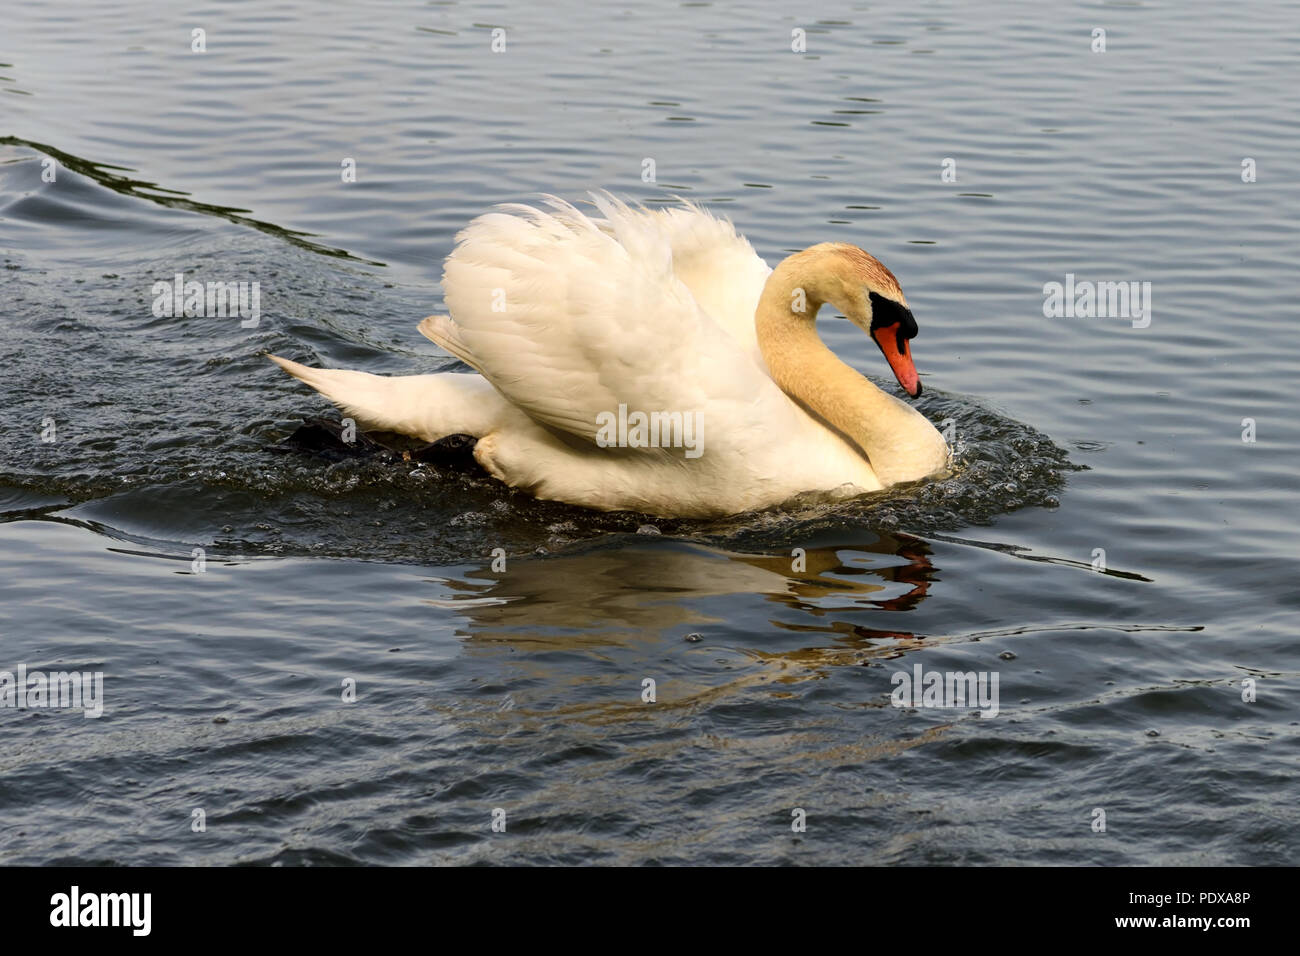 An adult mute swan in defensive mode, patrolling its territory. - Stock Image